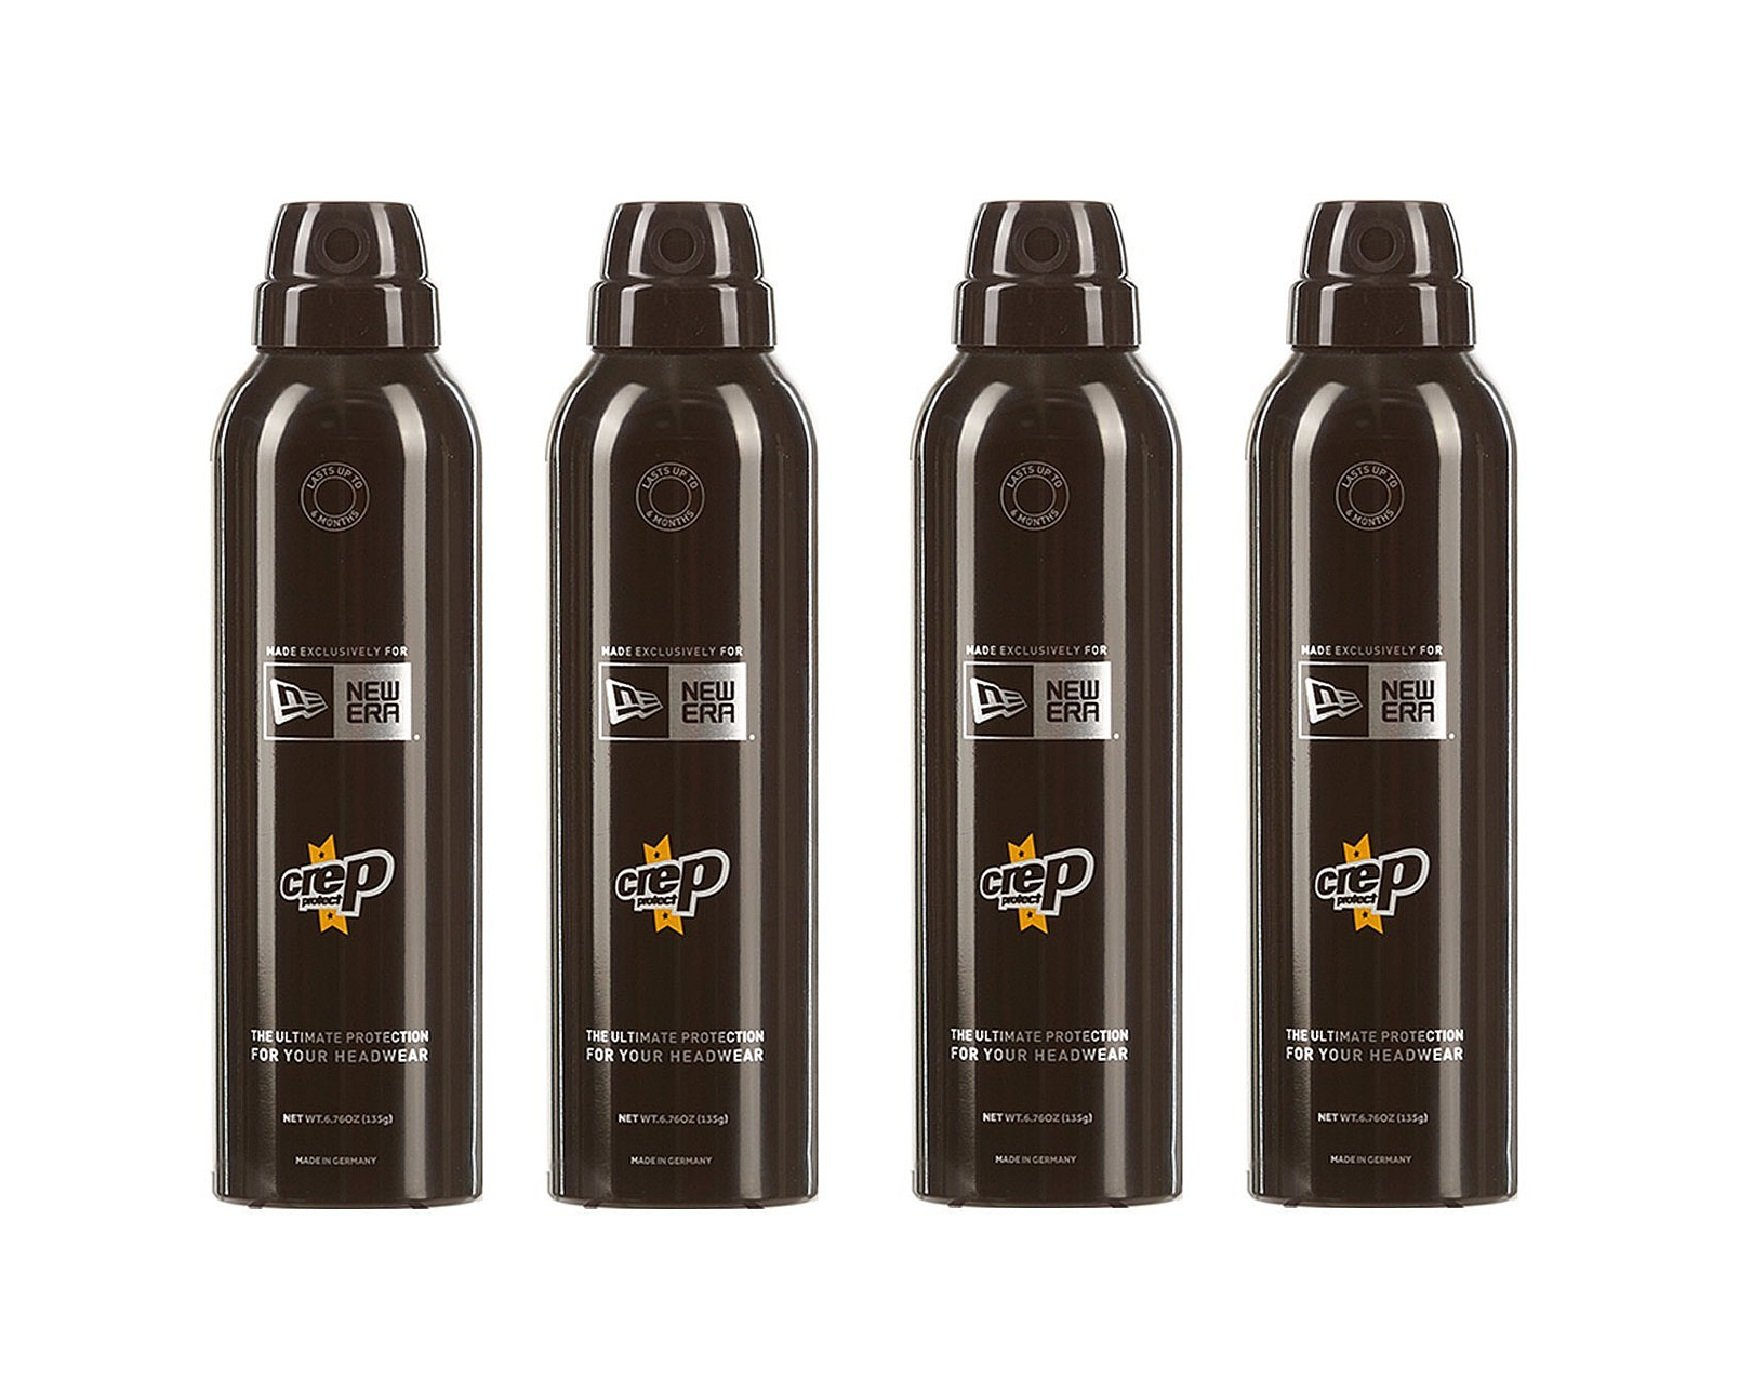 Crep Protect x New Era Headwear Protection Clear (4 Bottles of 200ml)